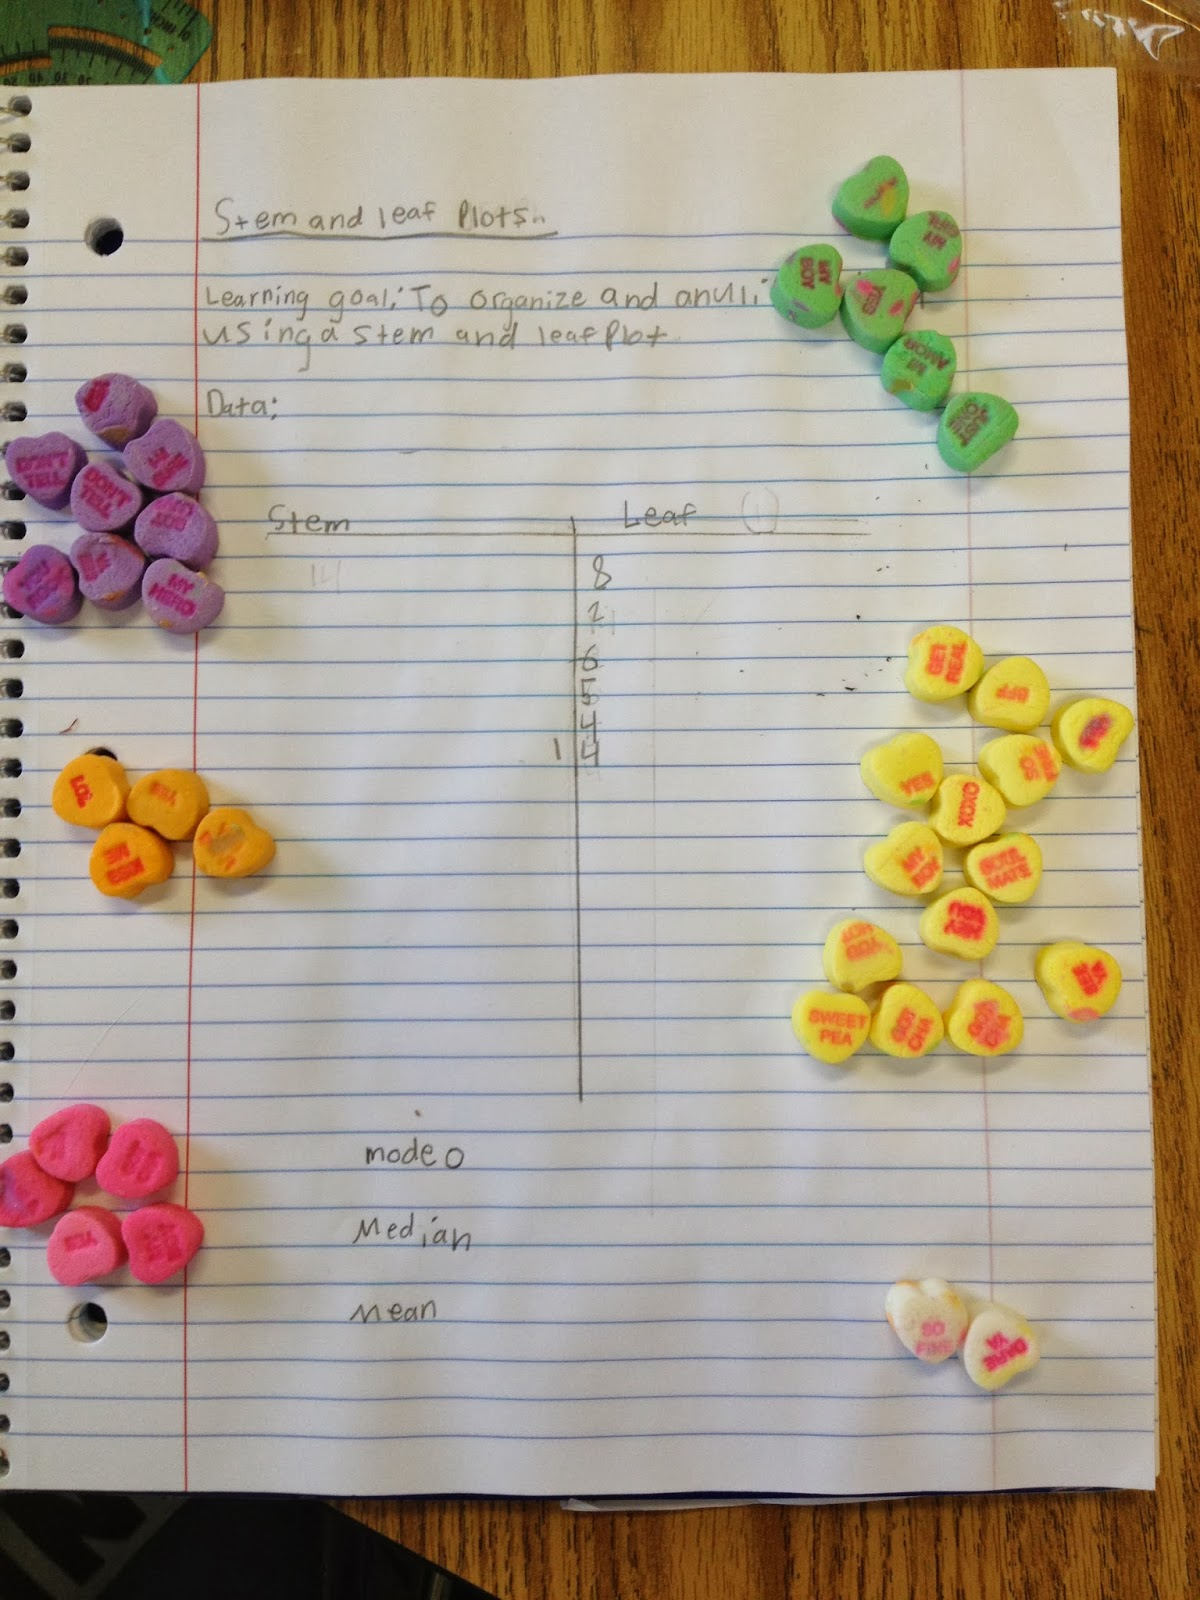 This Review (the Extension Activity) Asked To Find The Fraction, Decimal,  And Percentage Of Each Color